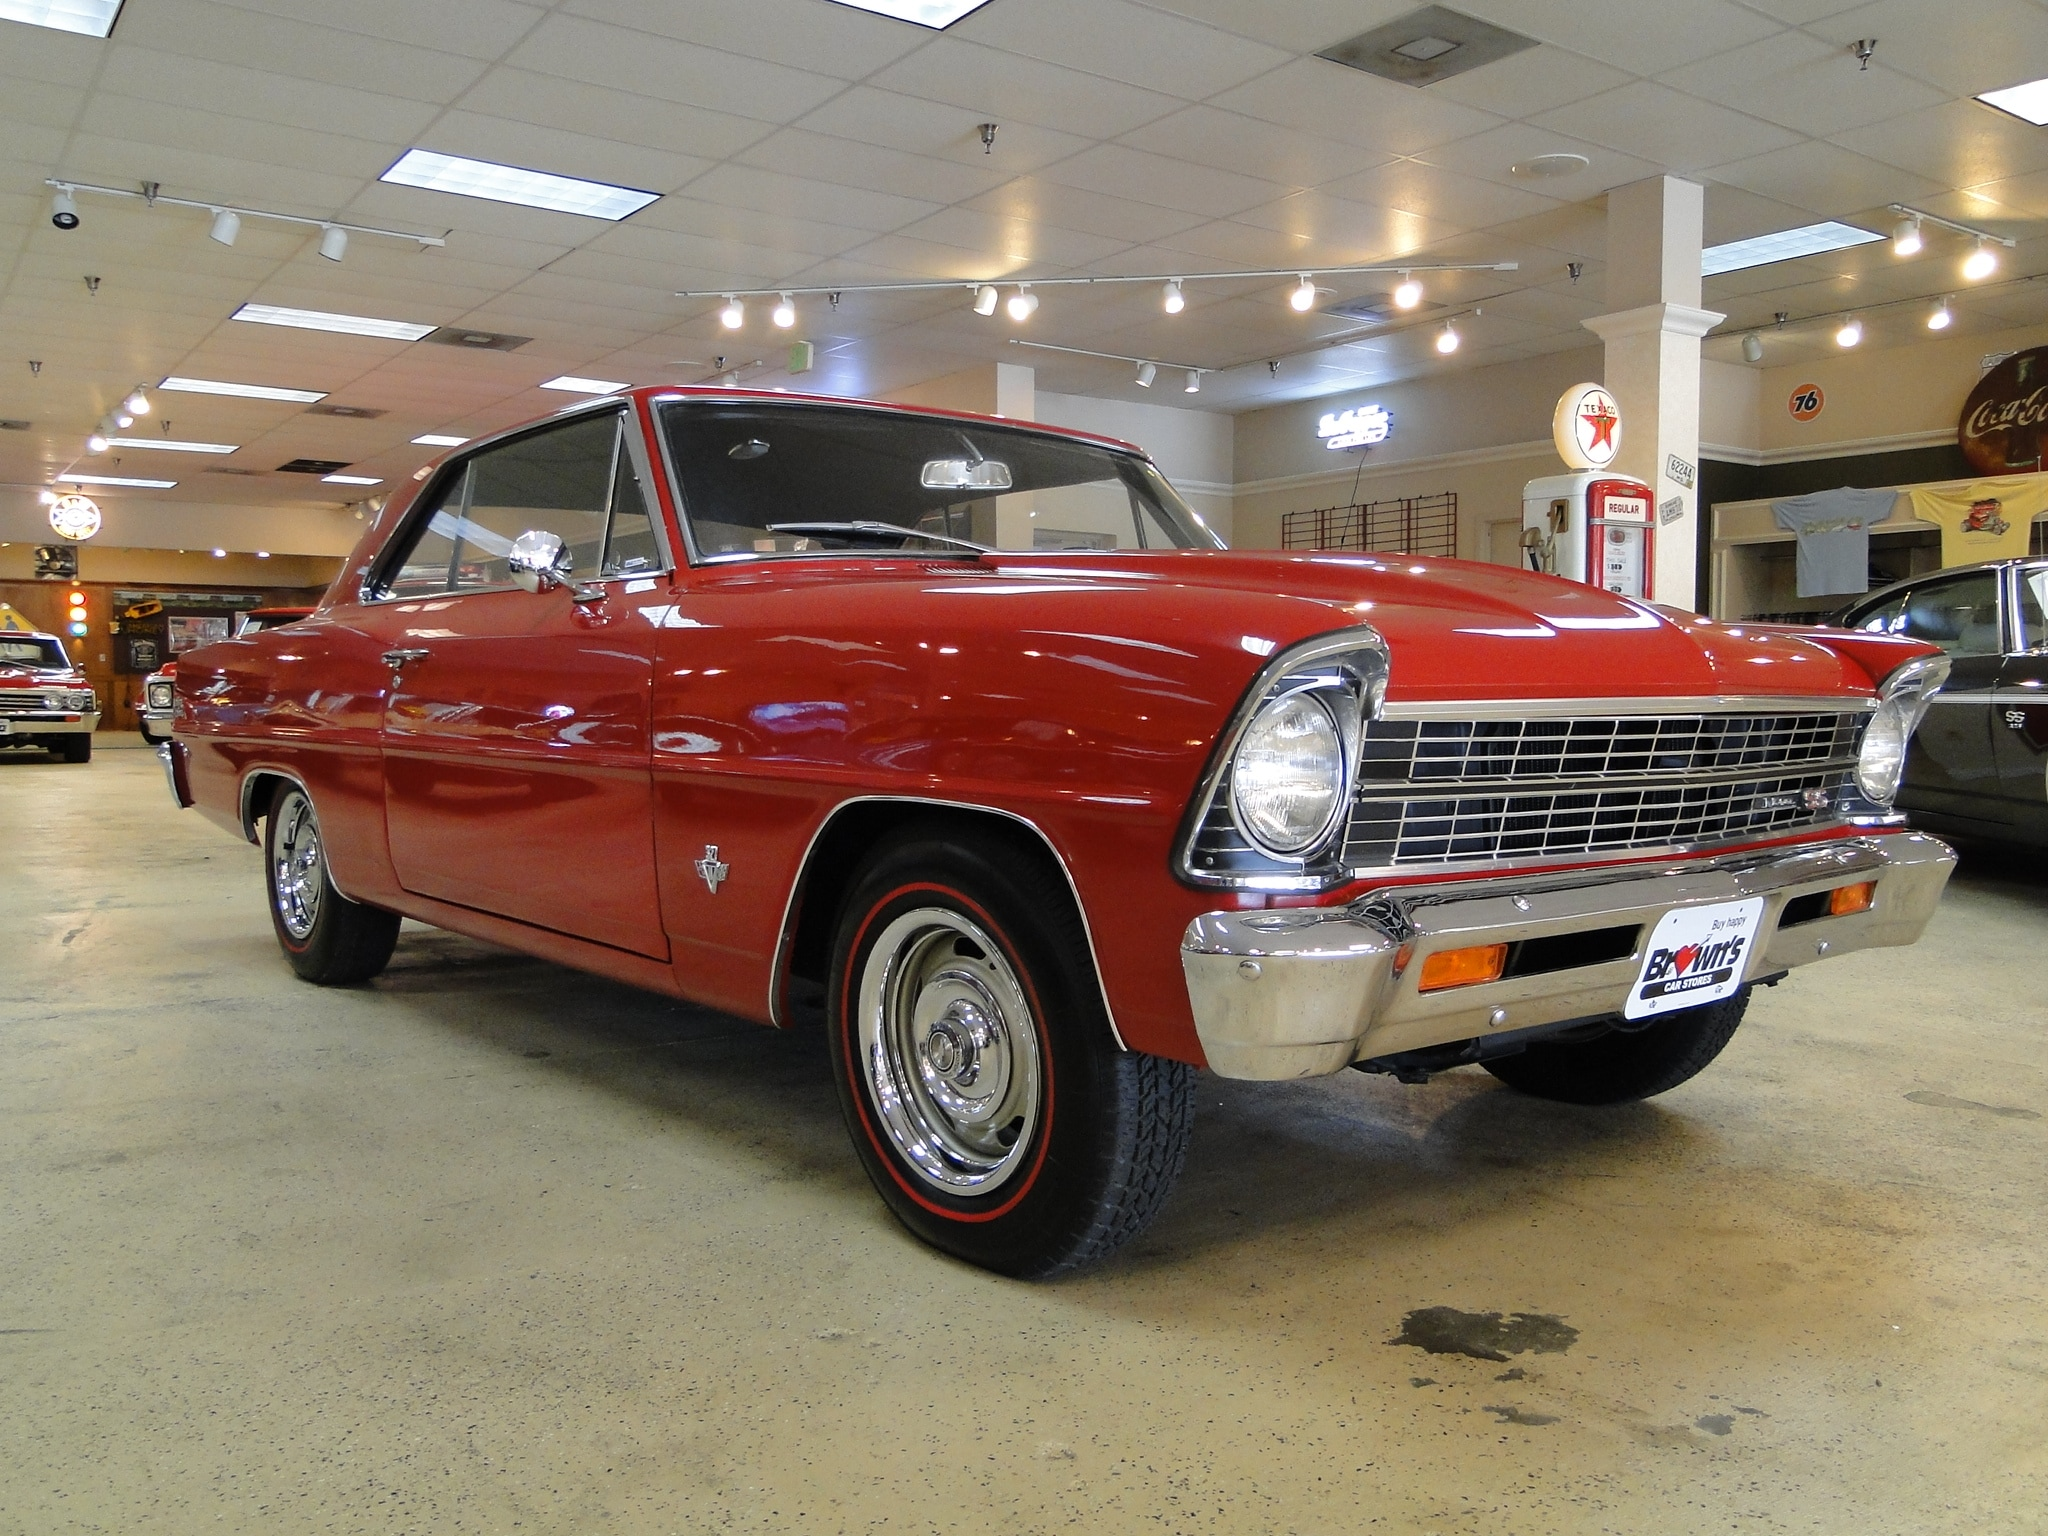 1967 Chevrolet Nova REAL Super Sport SOLD TO FL! Coupe Glen Burnie MD